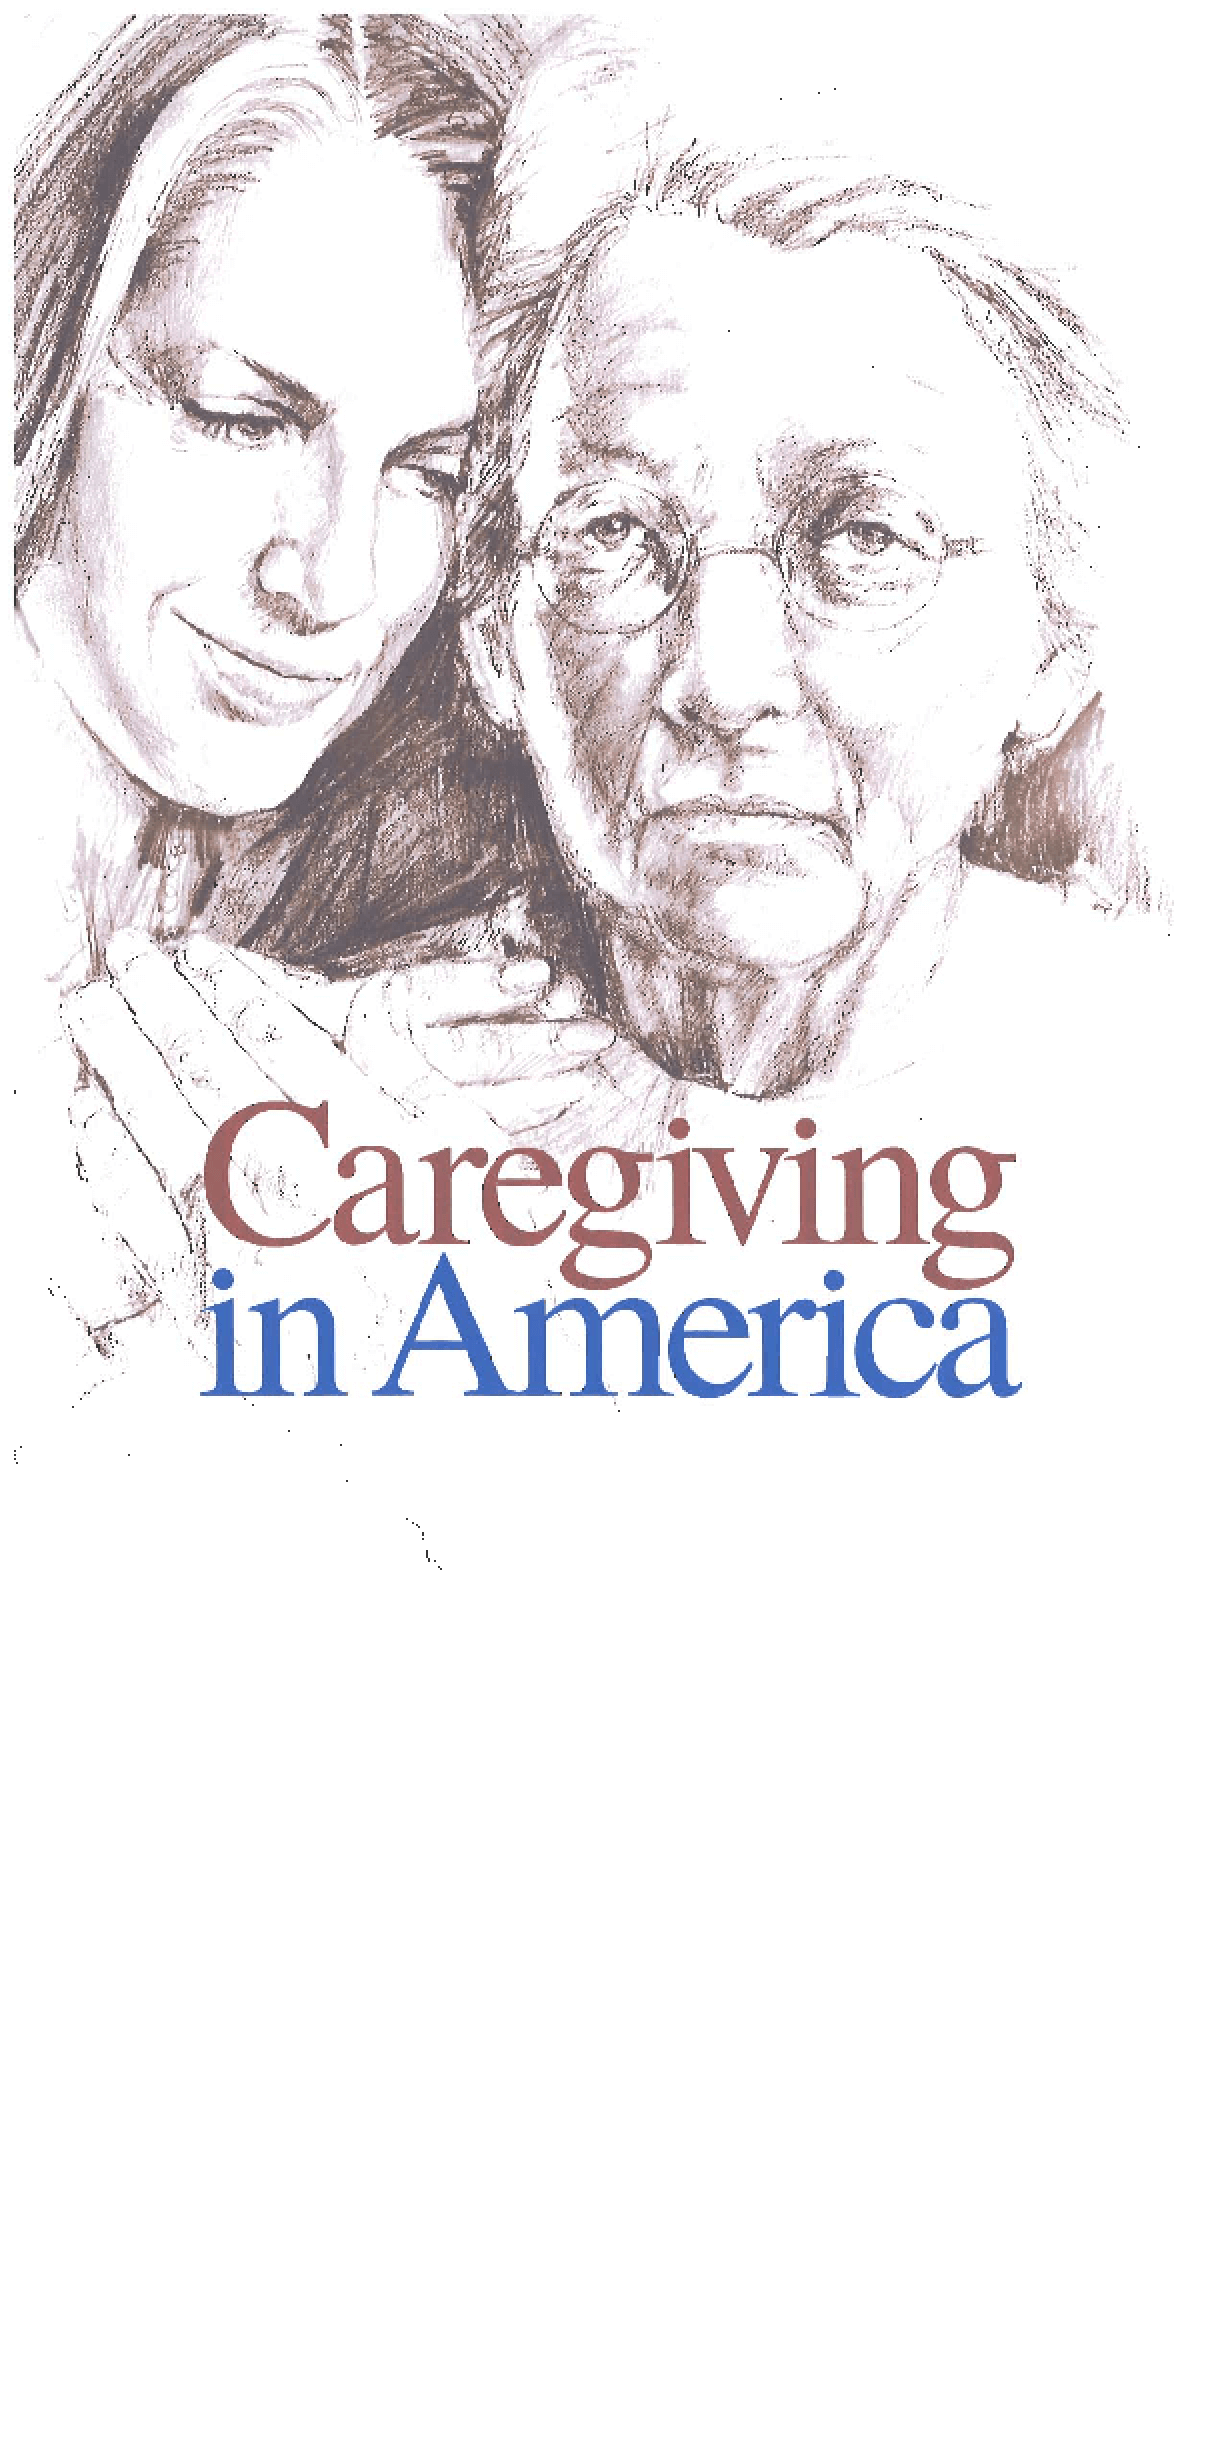 Caregiving in America